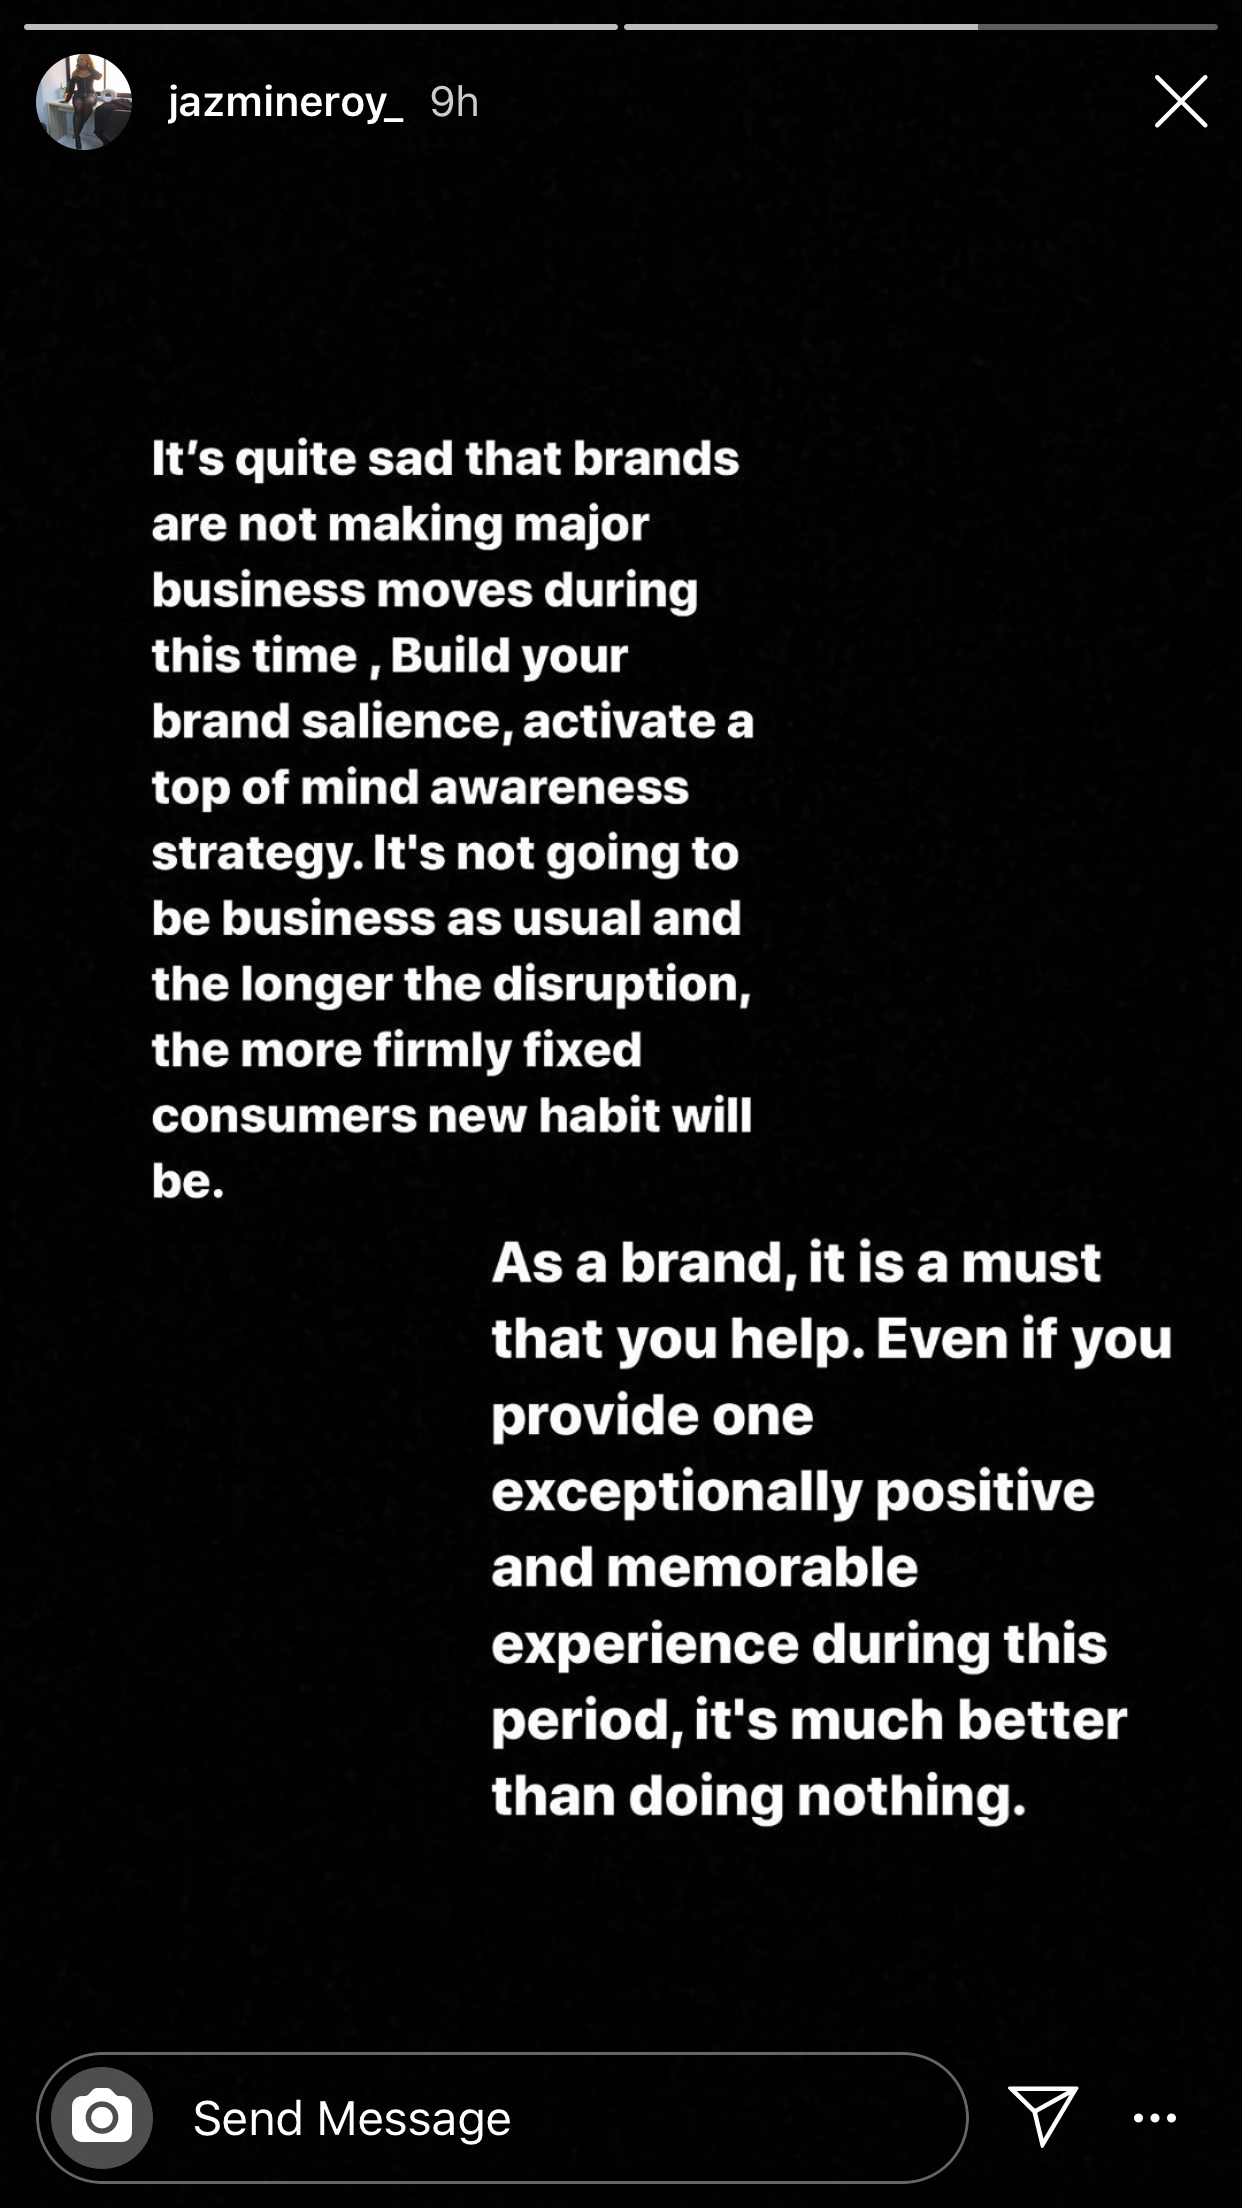 A screenshot from @jazmineroy_'s instagram story telling brands to create more and impact lives during this corona times.